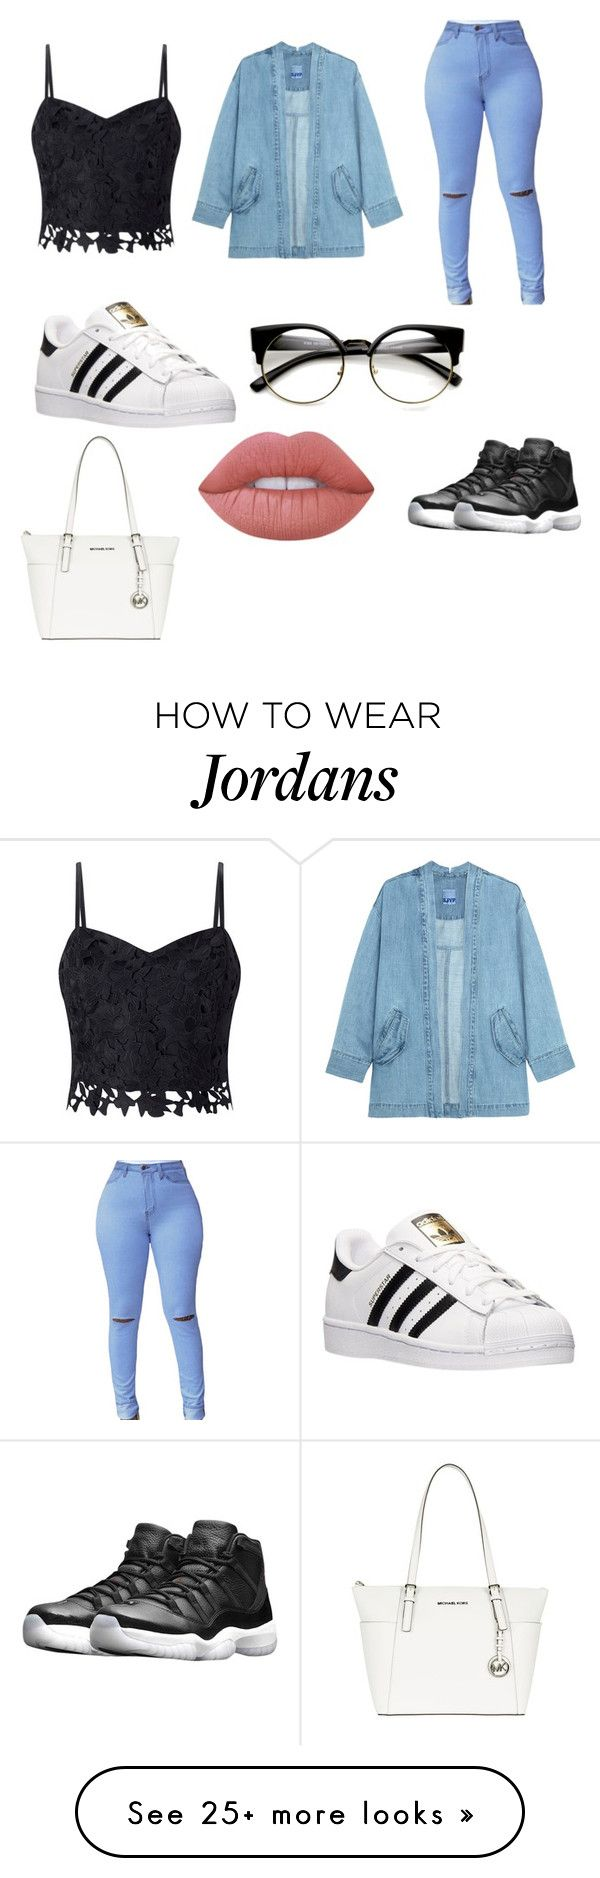 """weeknds clothes "" by classy-b on Polyvore featuring Lipsy, Steve J & Yoni P, adidas, MICHAEL Michael Kors, Lime Crime and NIKE"